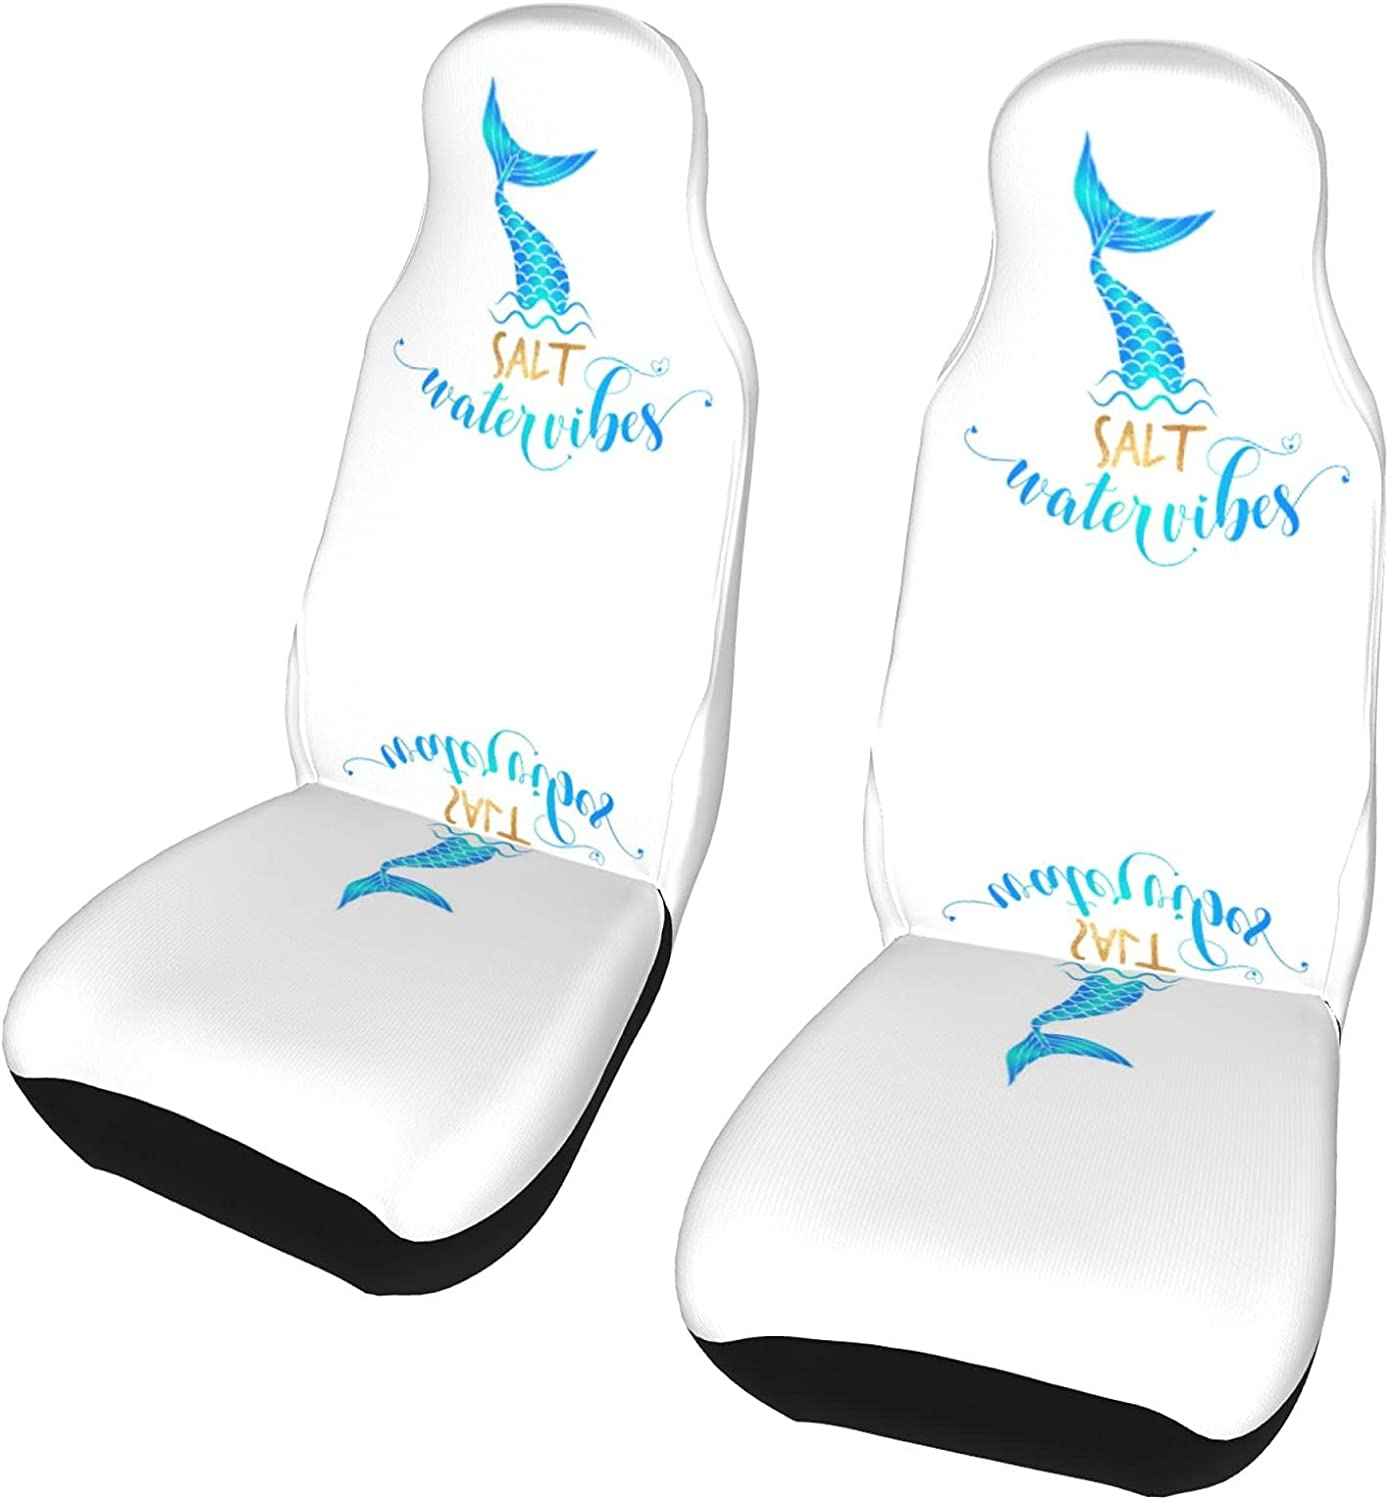 Super sale REDDATES Mermaid Car Seat Cover Protector Max 43% OFF 2 Front Pack Seats